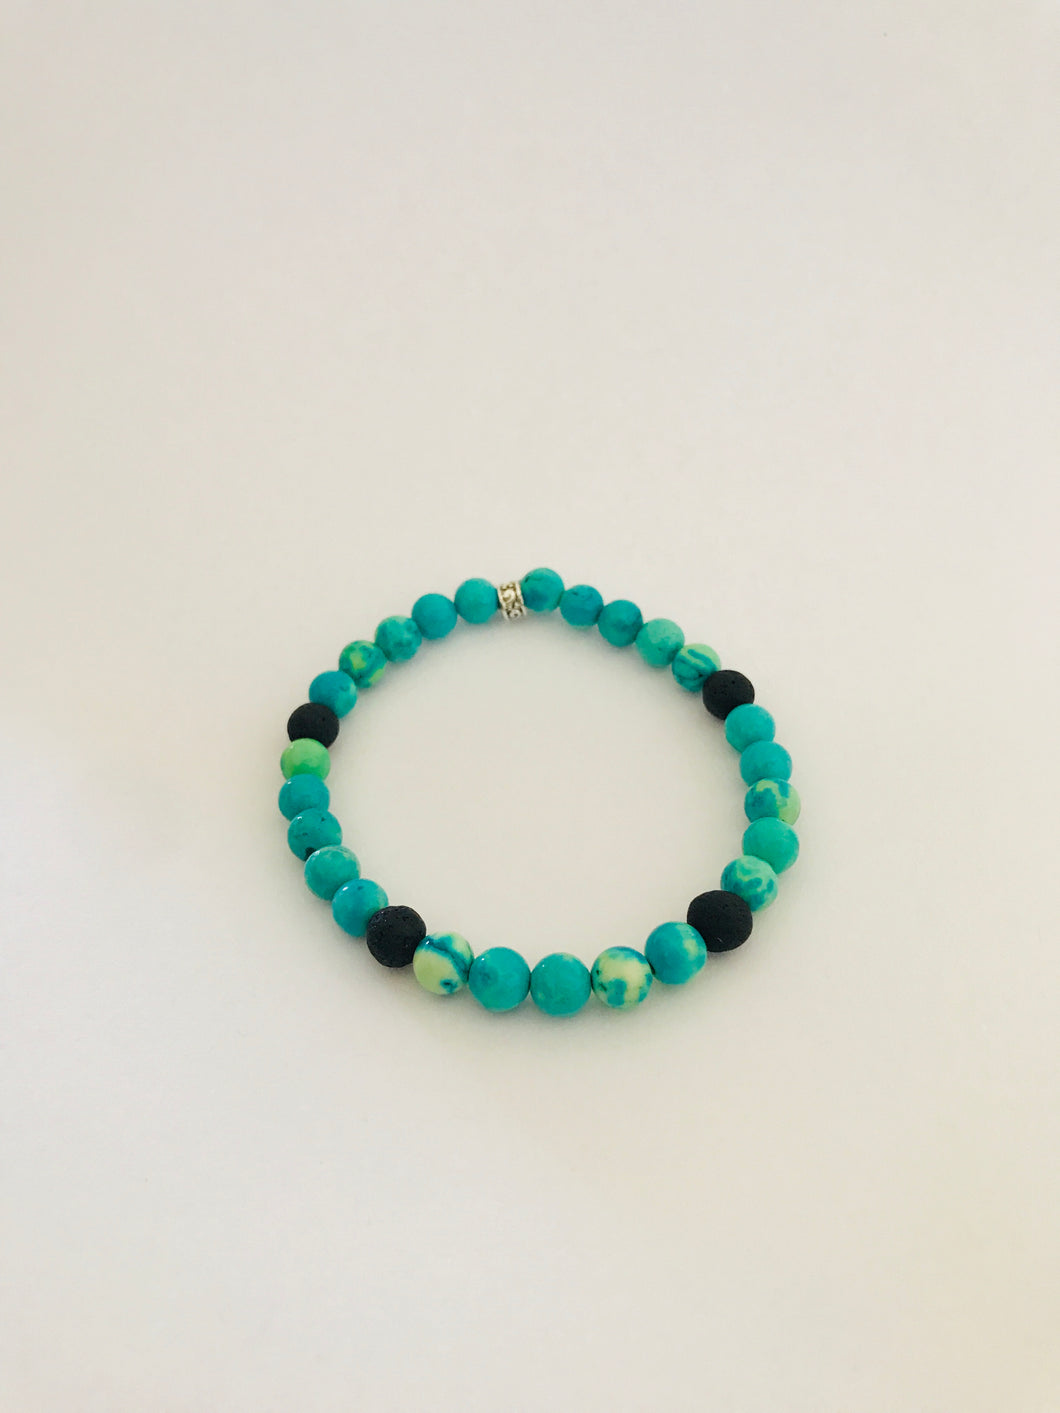 Lava Bead and Turquoise Diffuser Bracelet